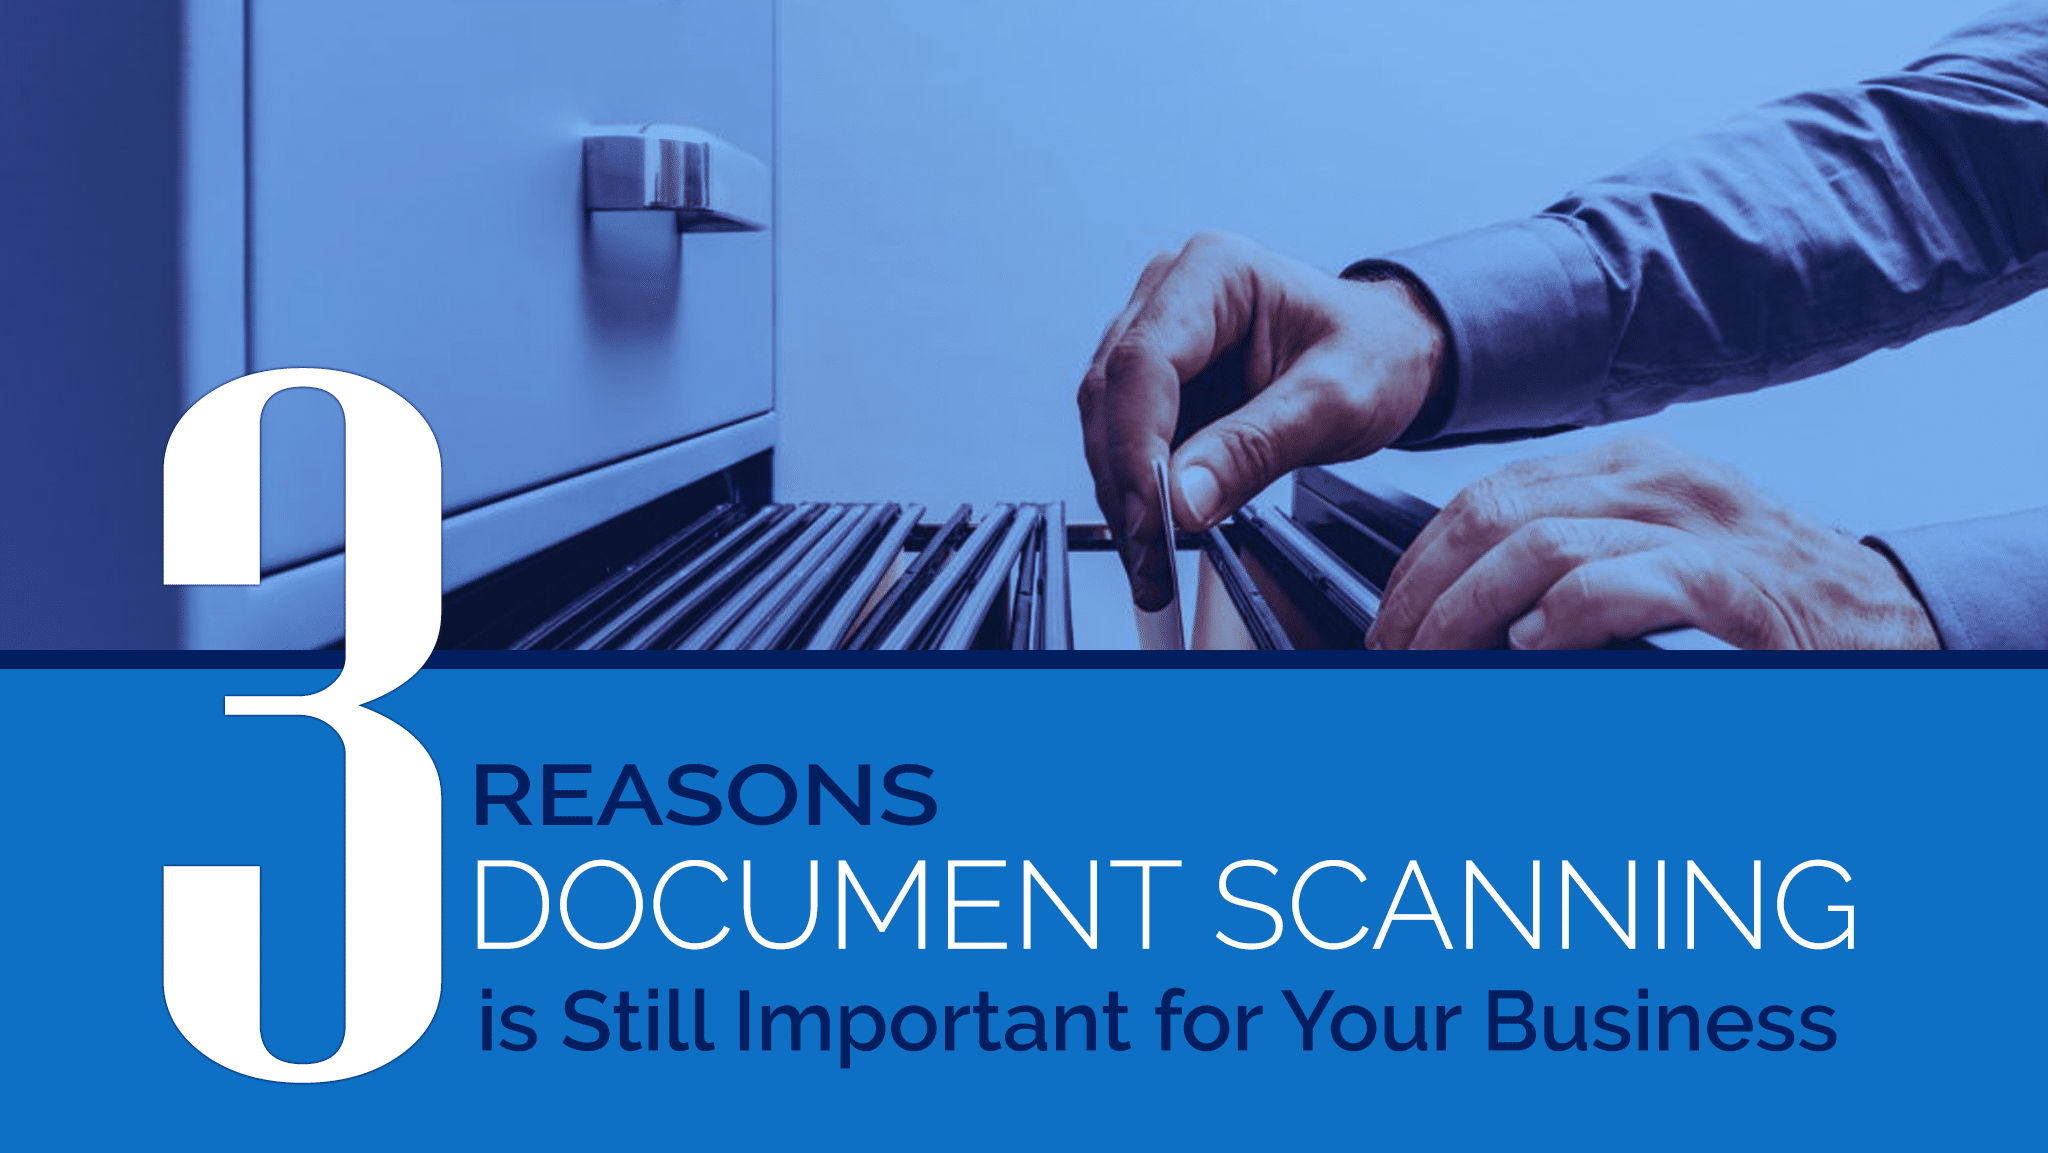 3 Reasons Document Scanning is Still Relevant for Your Business